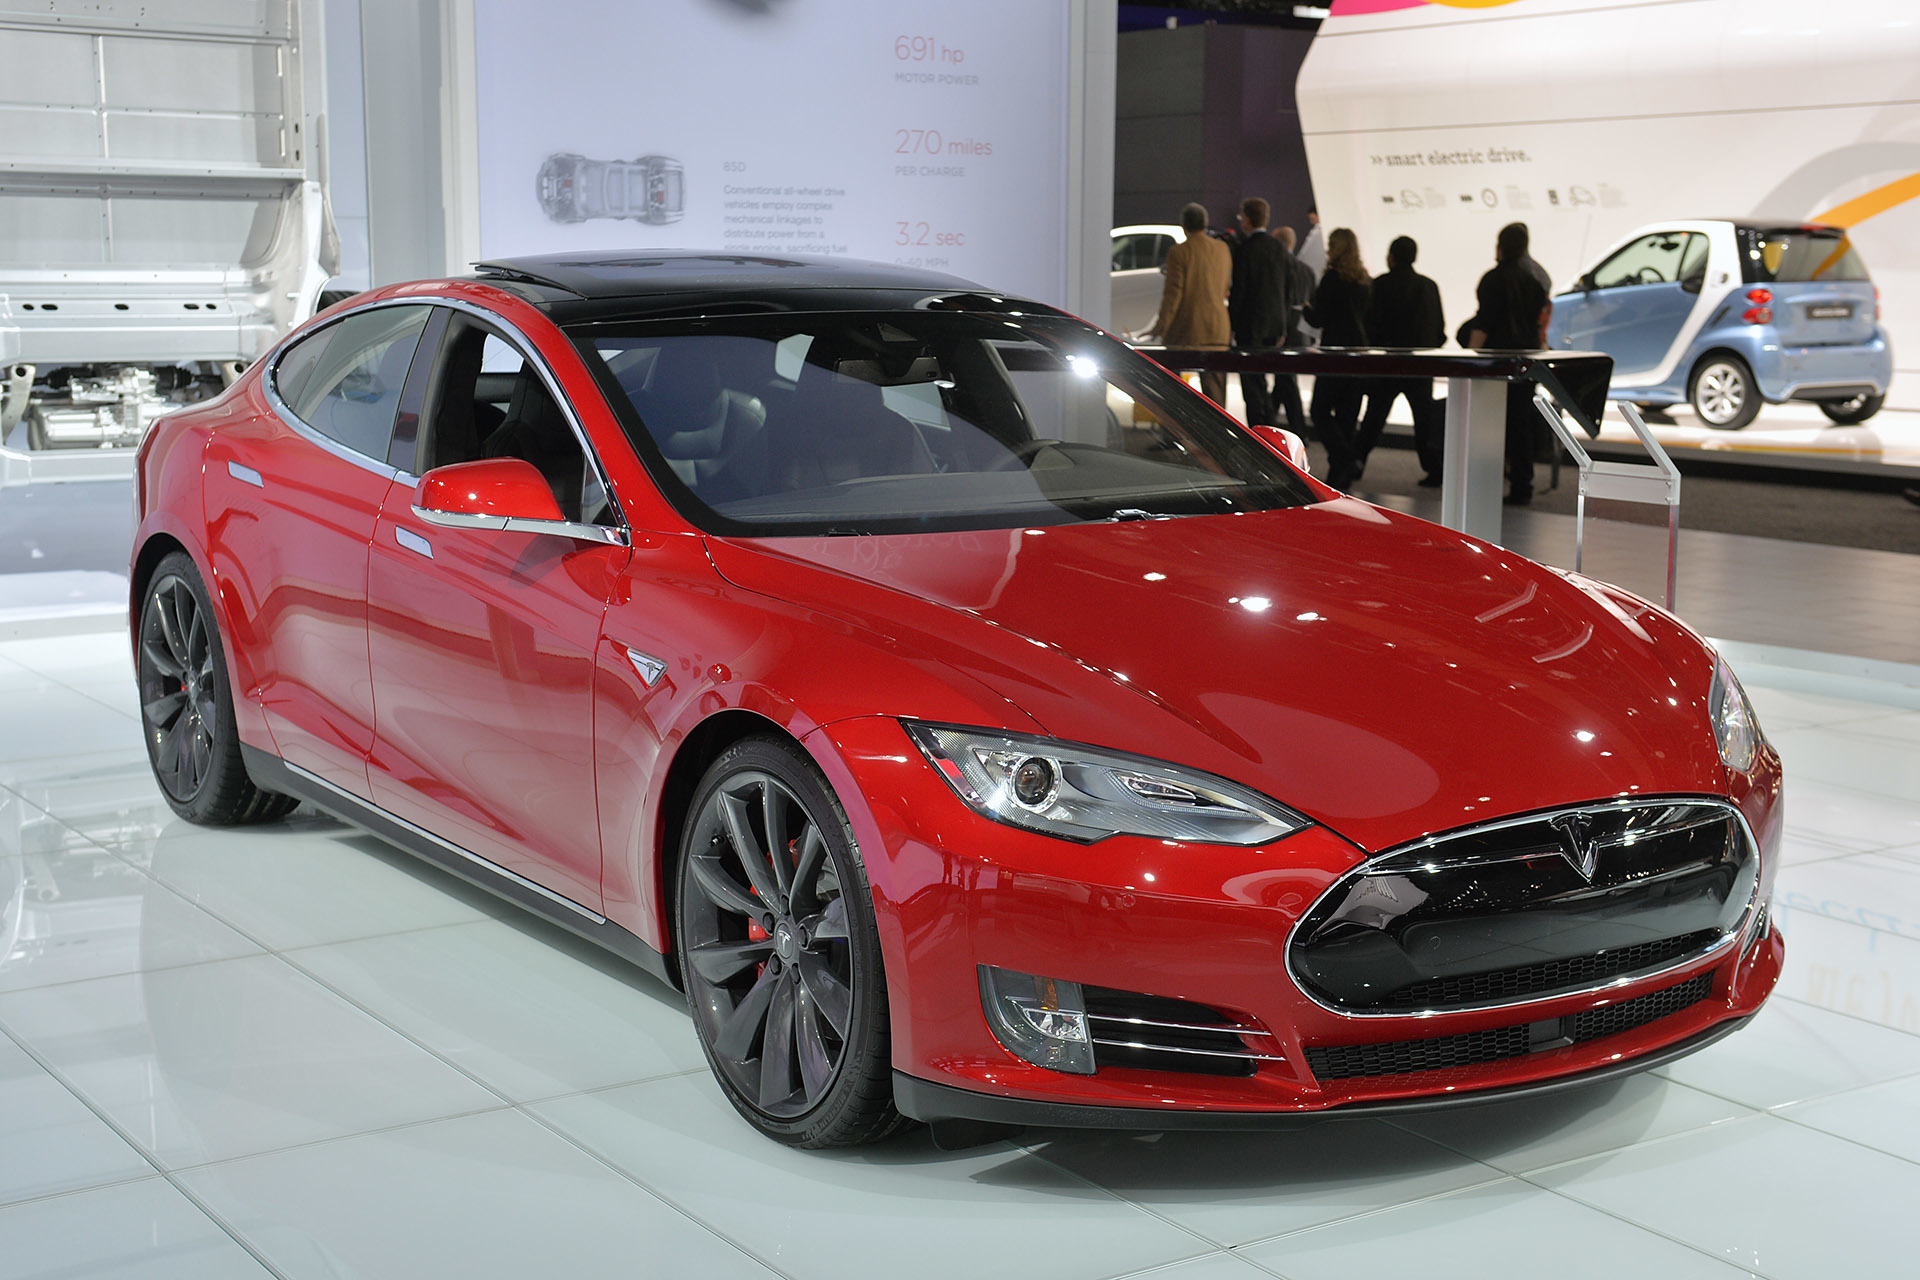 2015 tesla model s p85d detroit 2015 photo gallery autoblog. Black Bedroom Furniture Sets. Home Design Ideas